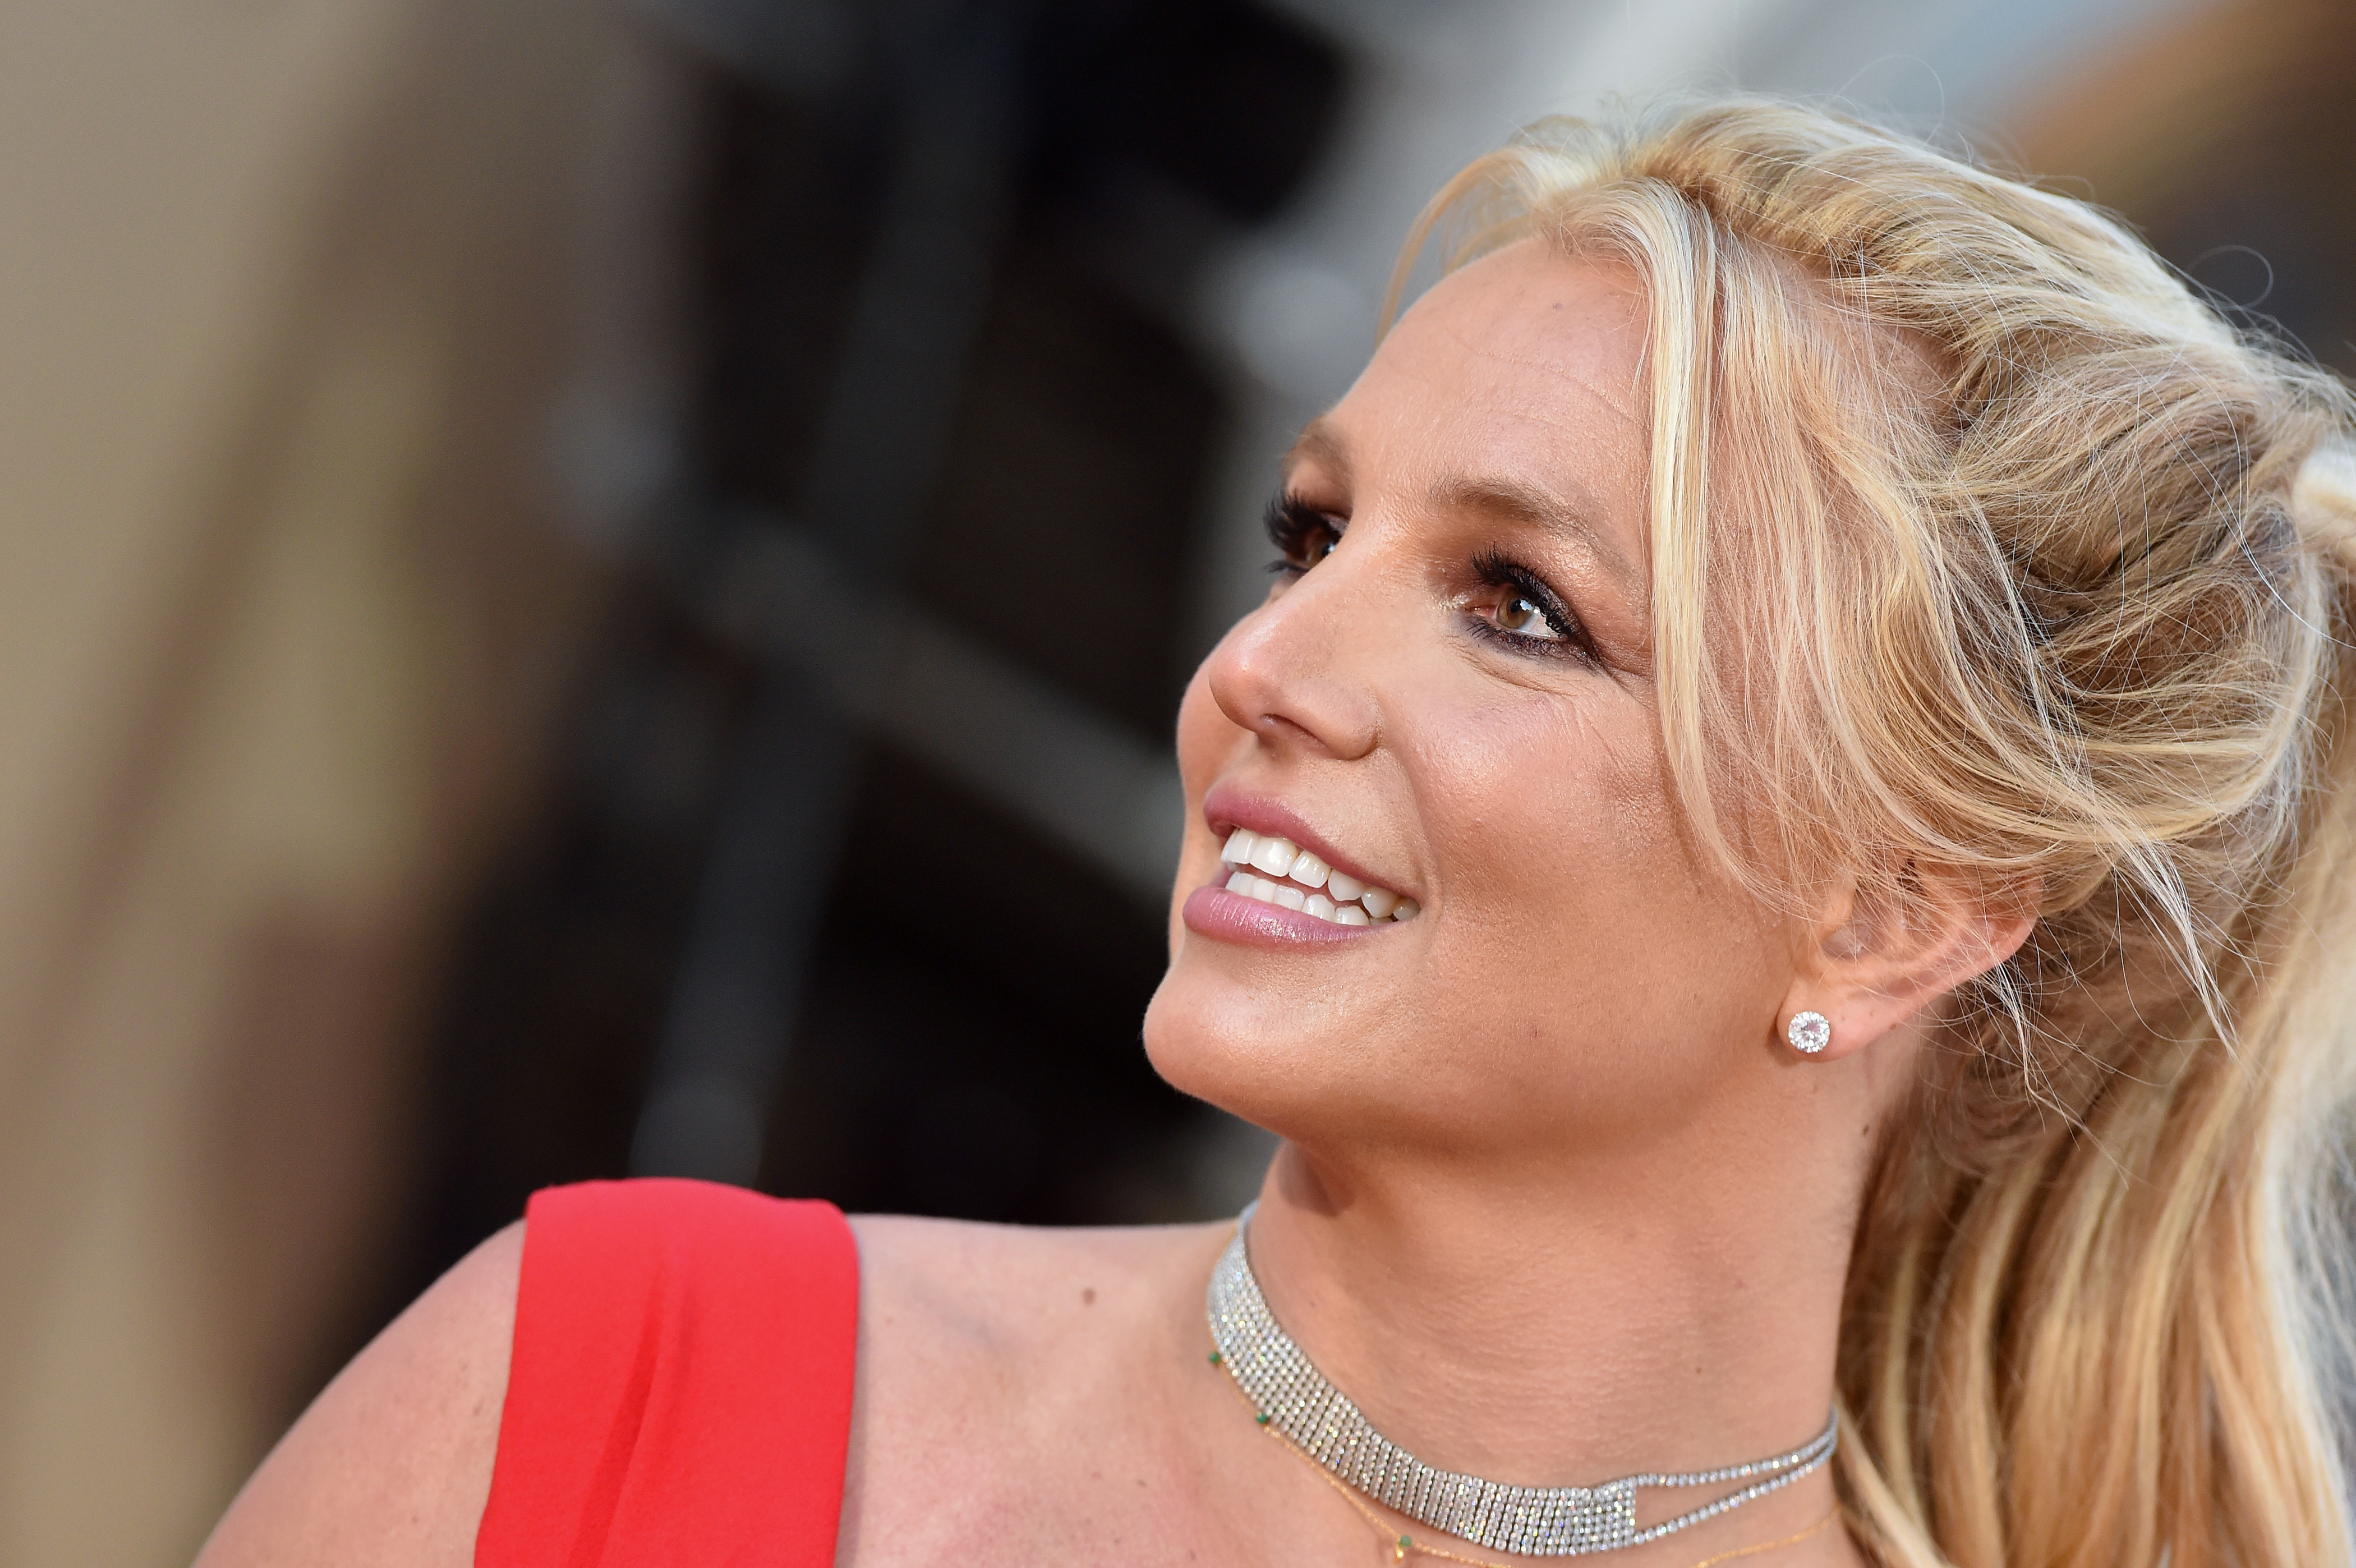 What Happened to Britney Spears' Instagram Account?